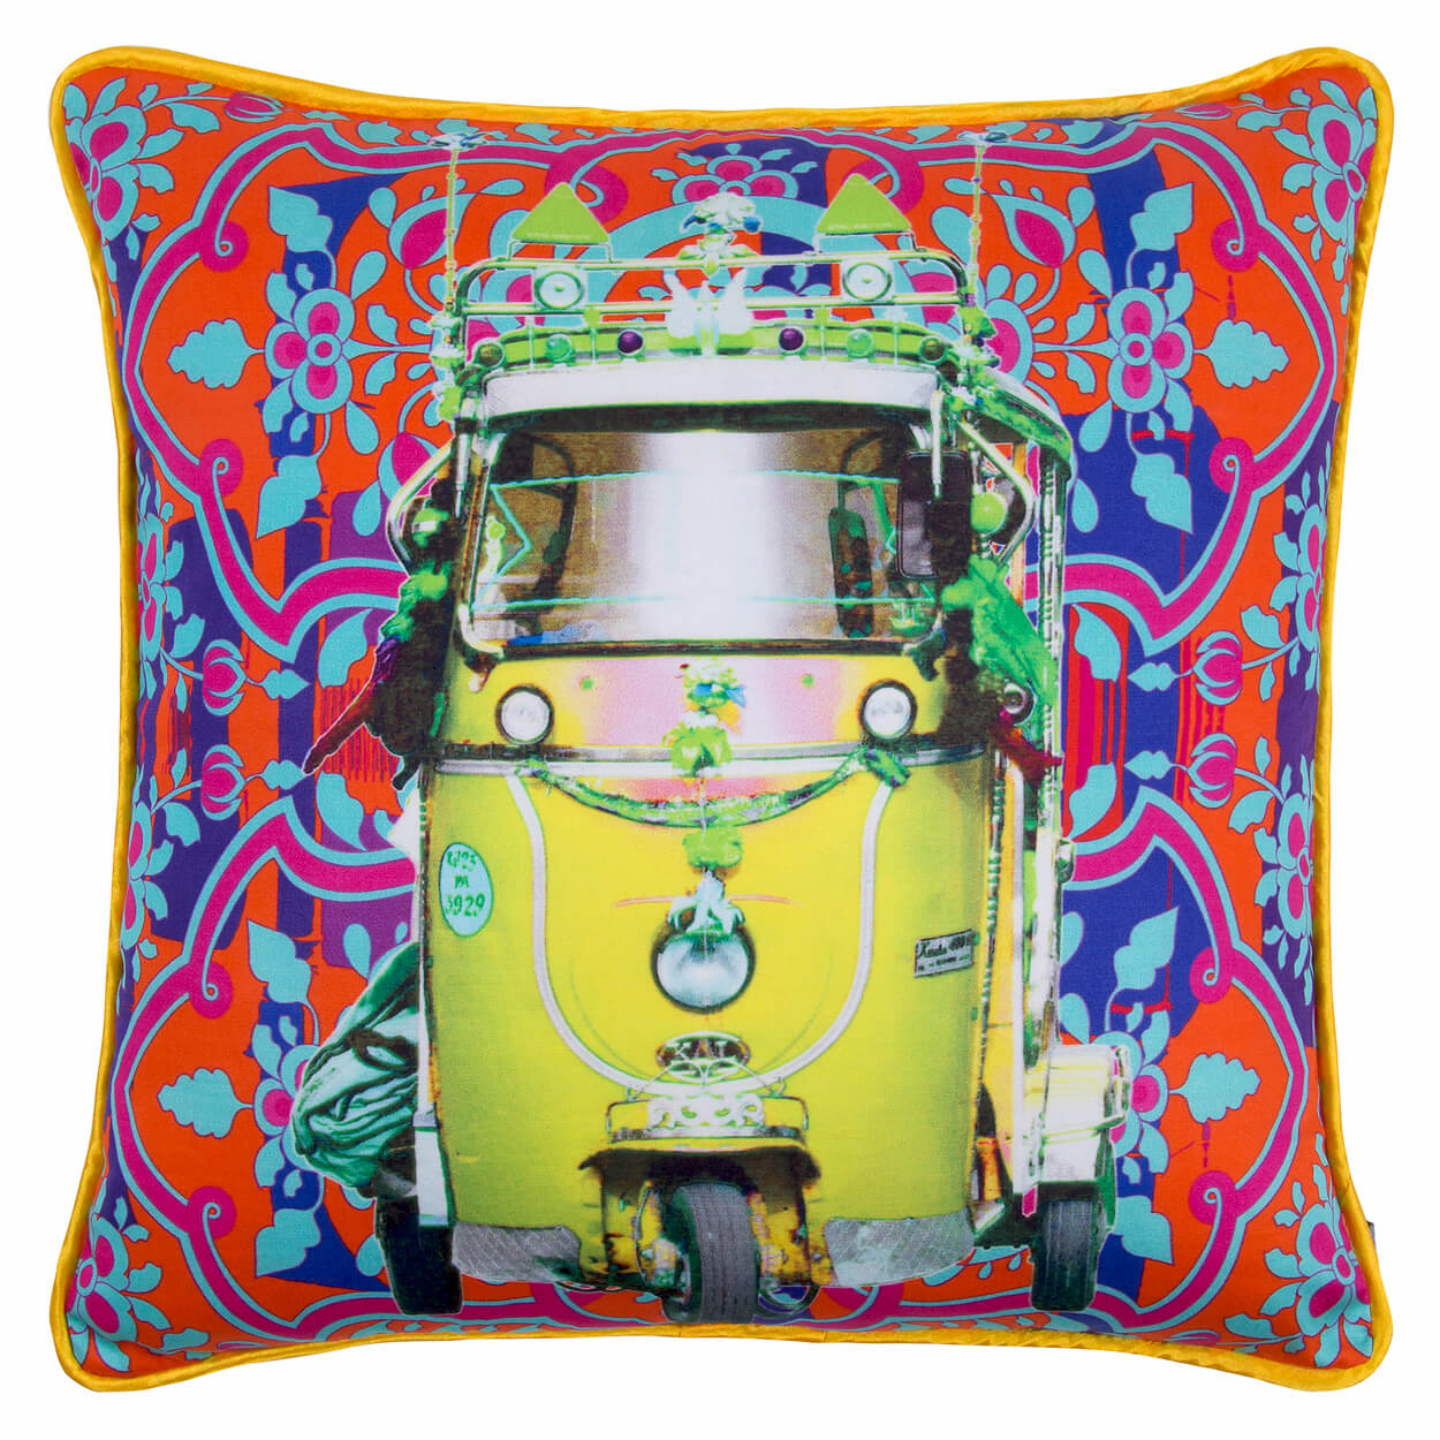 Lemon Yellow Taxi Glaze Cotton Cushion Cover 16x16 Inches